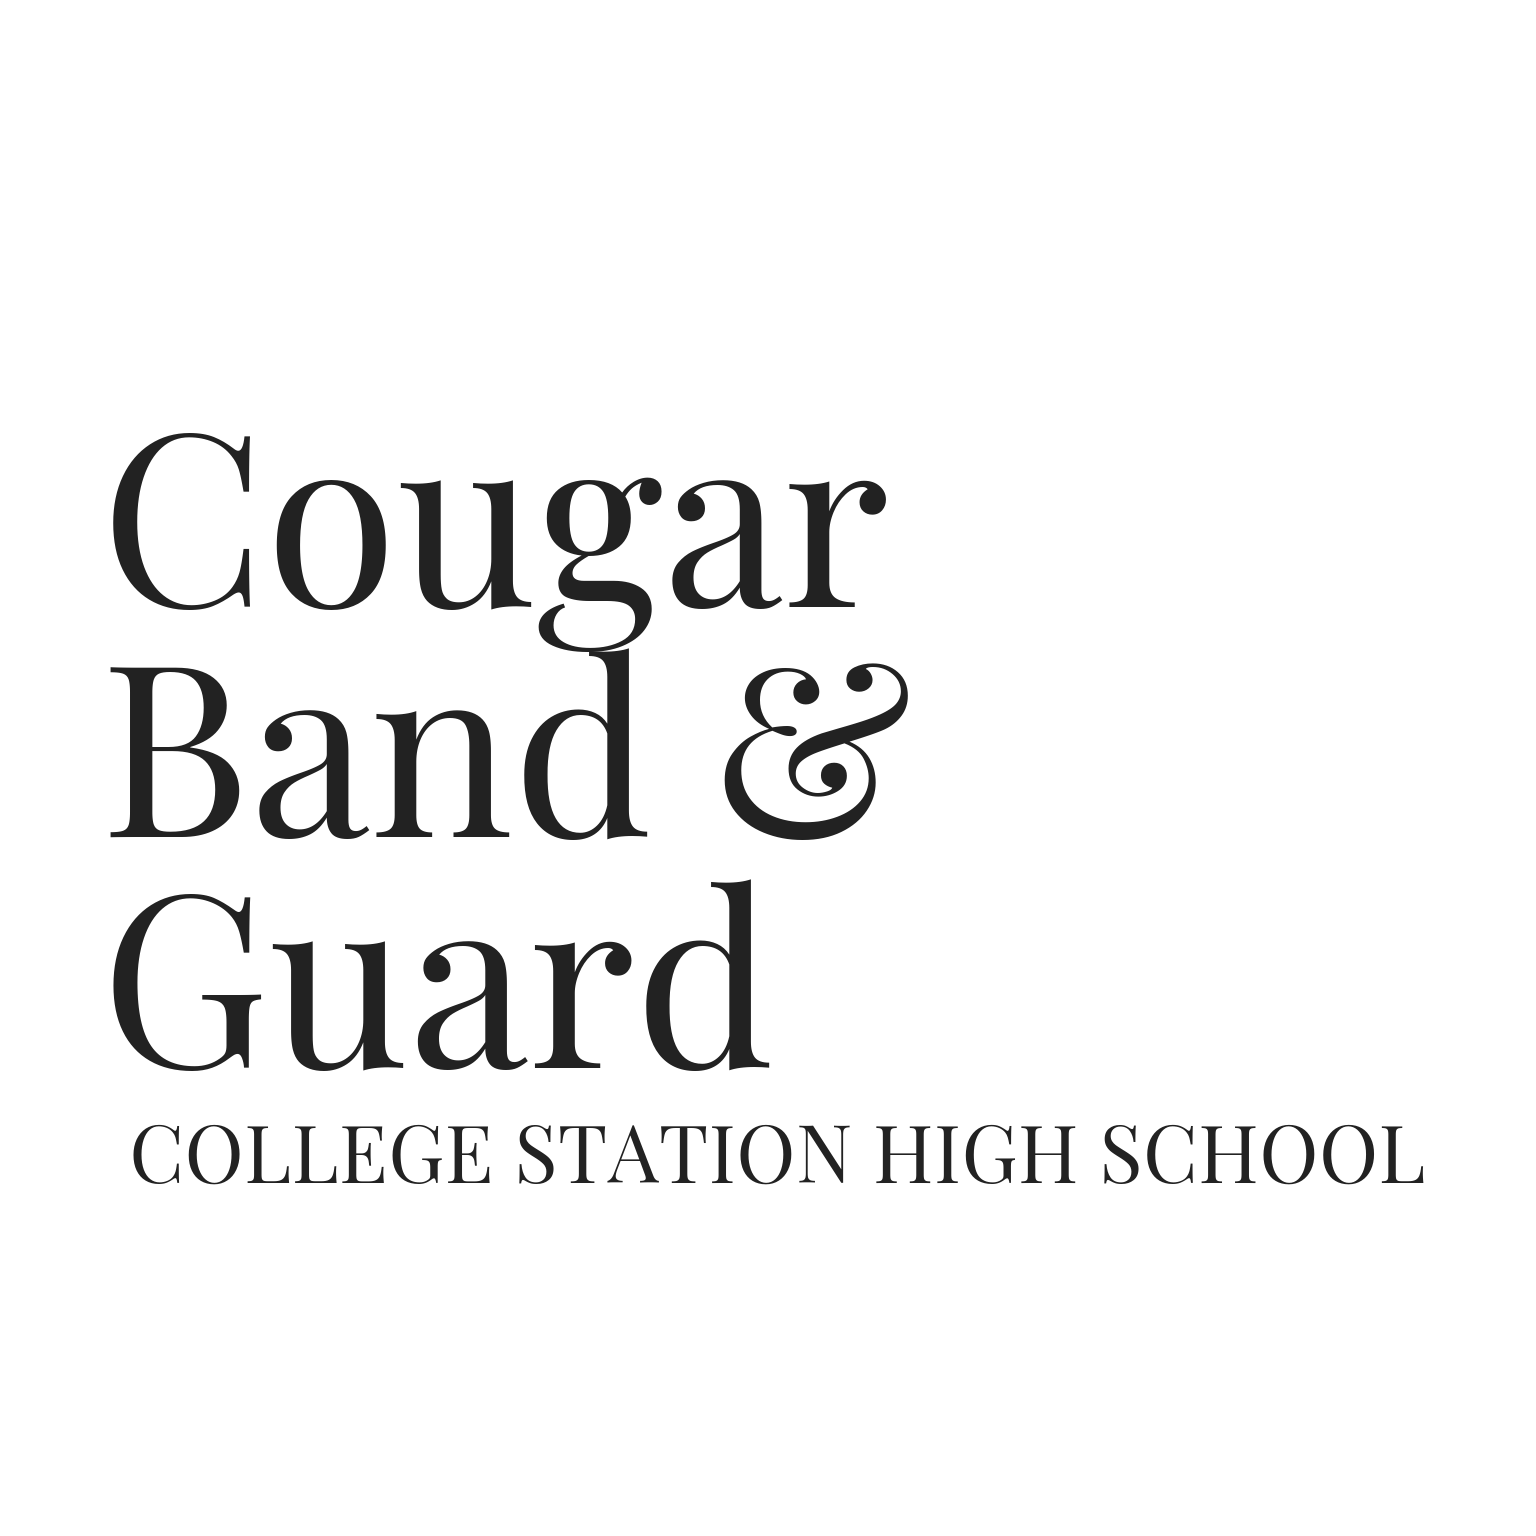 College Station High School Cougar Band & Guard